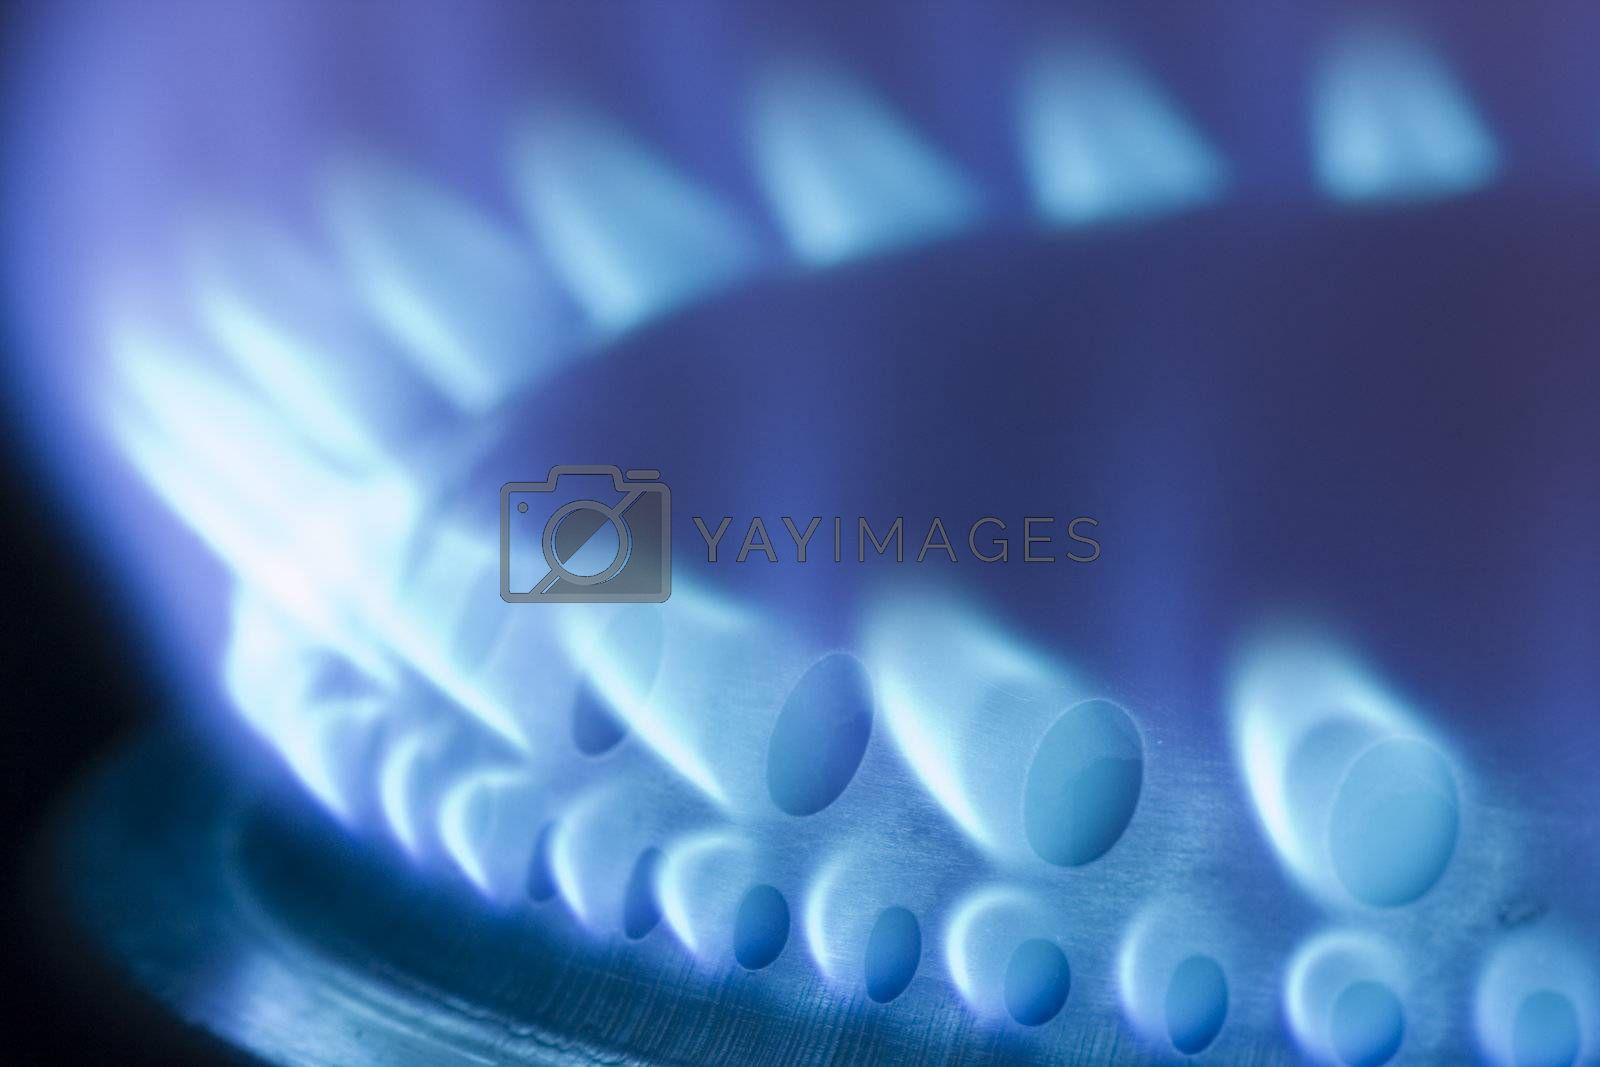 Blue flames of a gas stove by ArtmannWitte